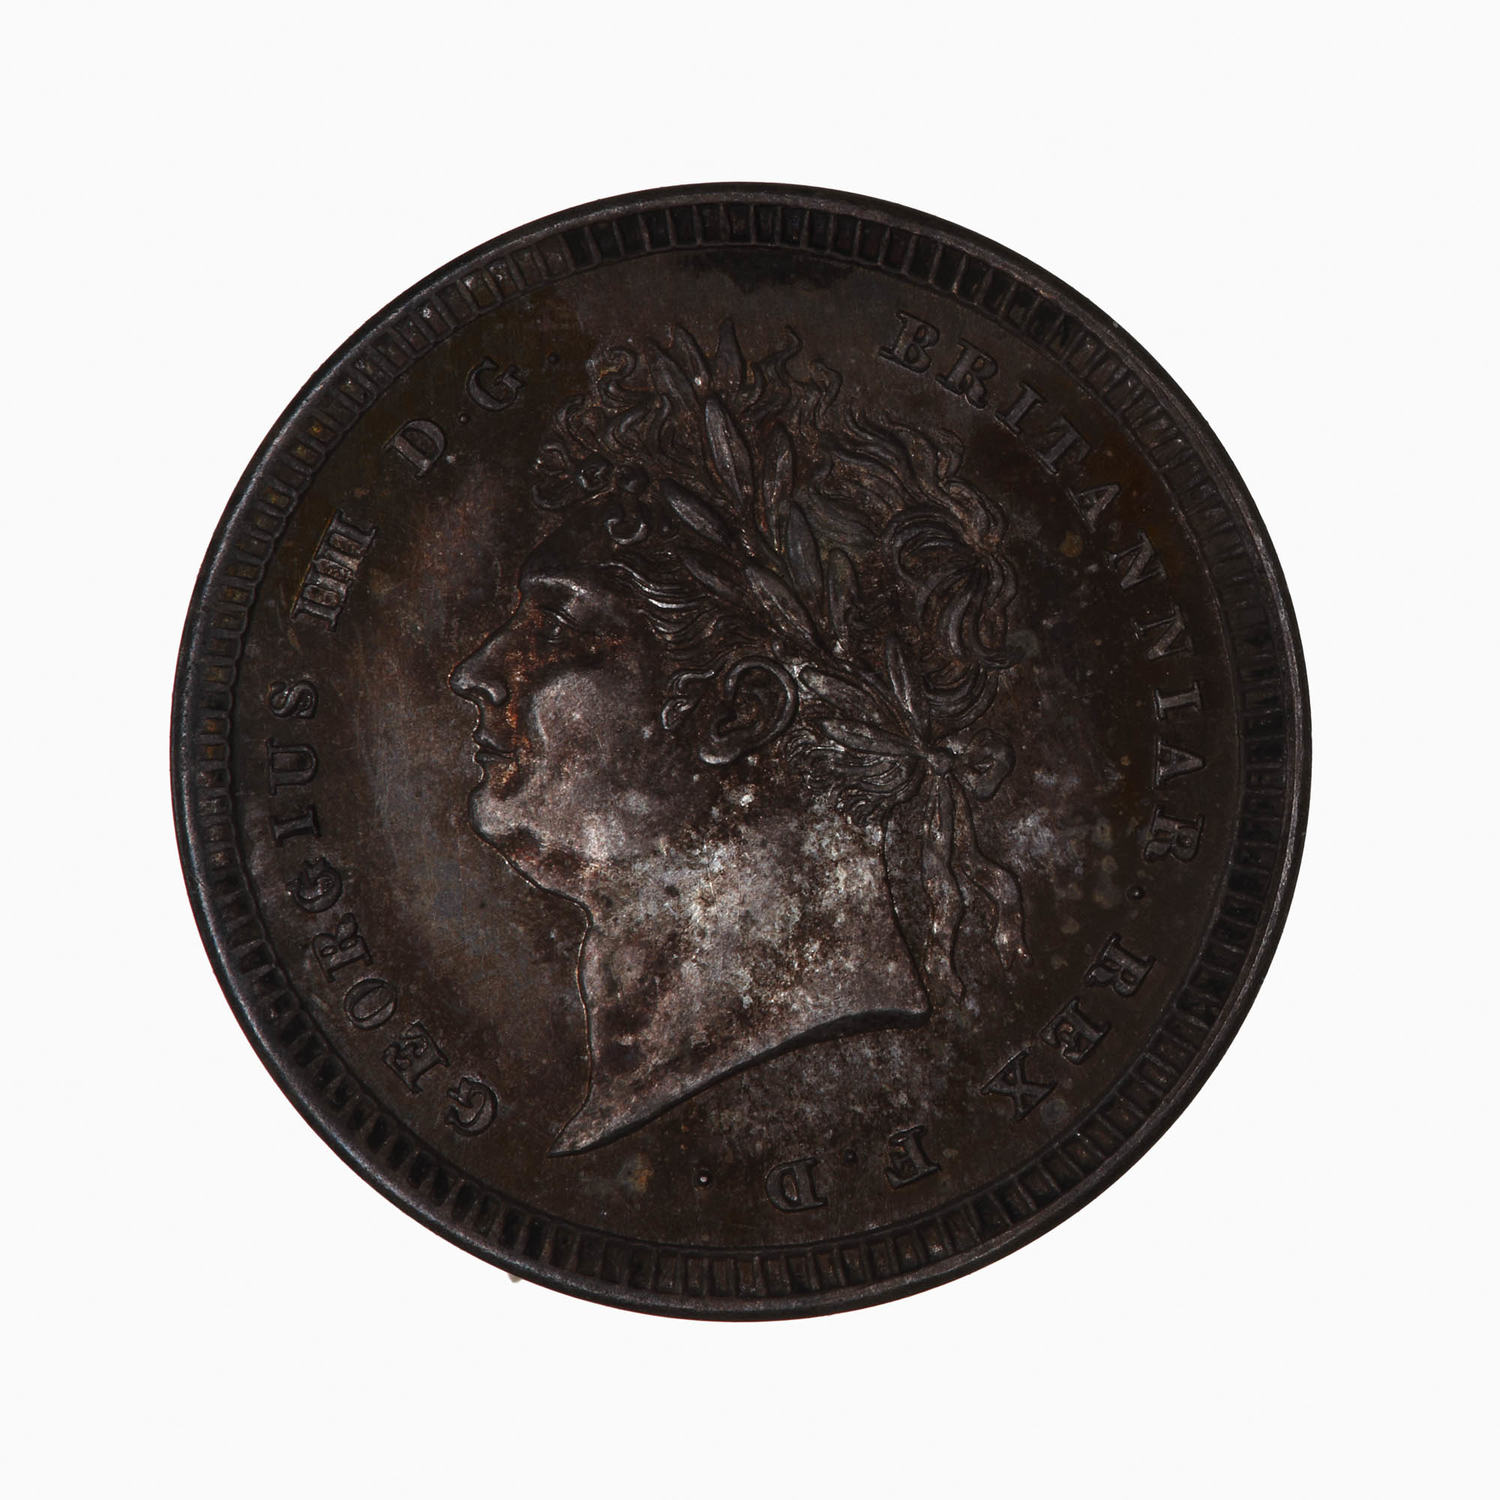 Twopence 1828 (Maundy): Photo Coin - Twopence, George IV, Great Britain, 1828